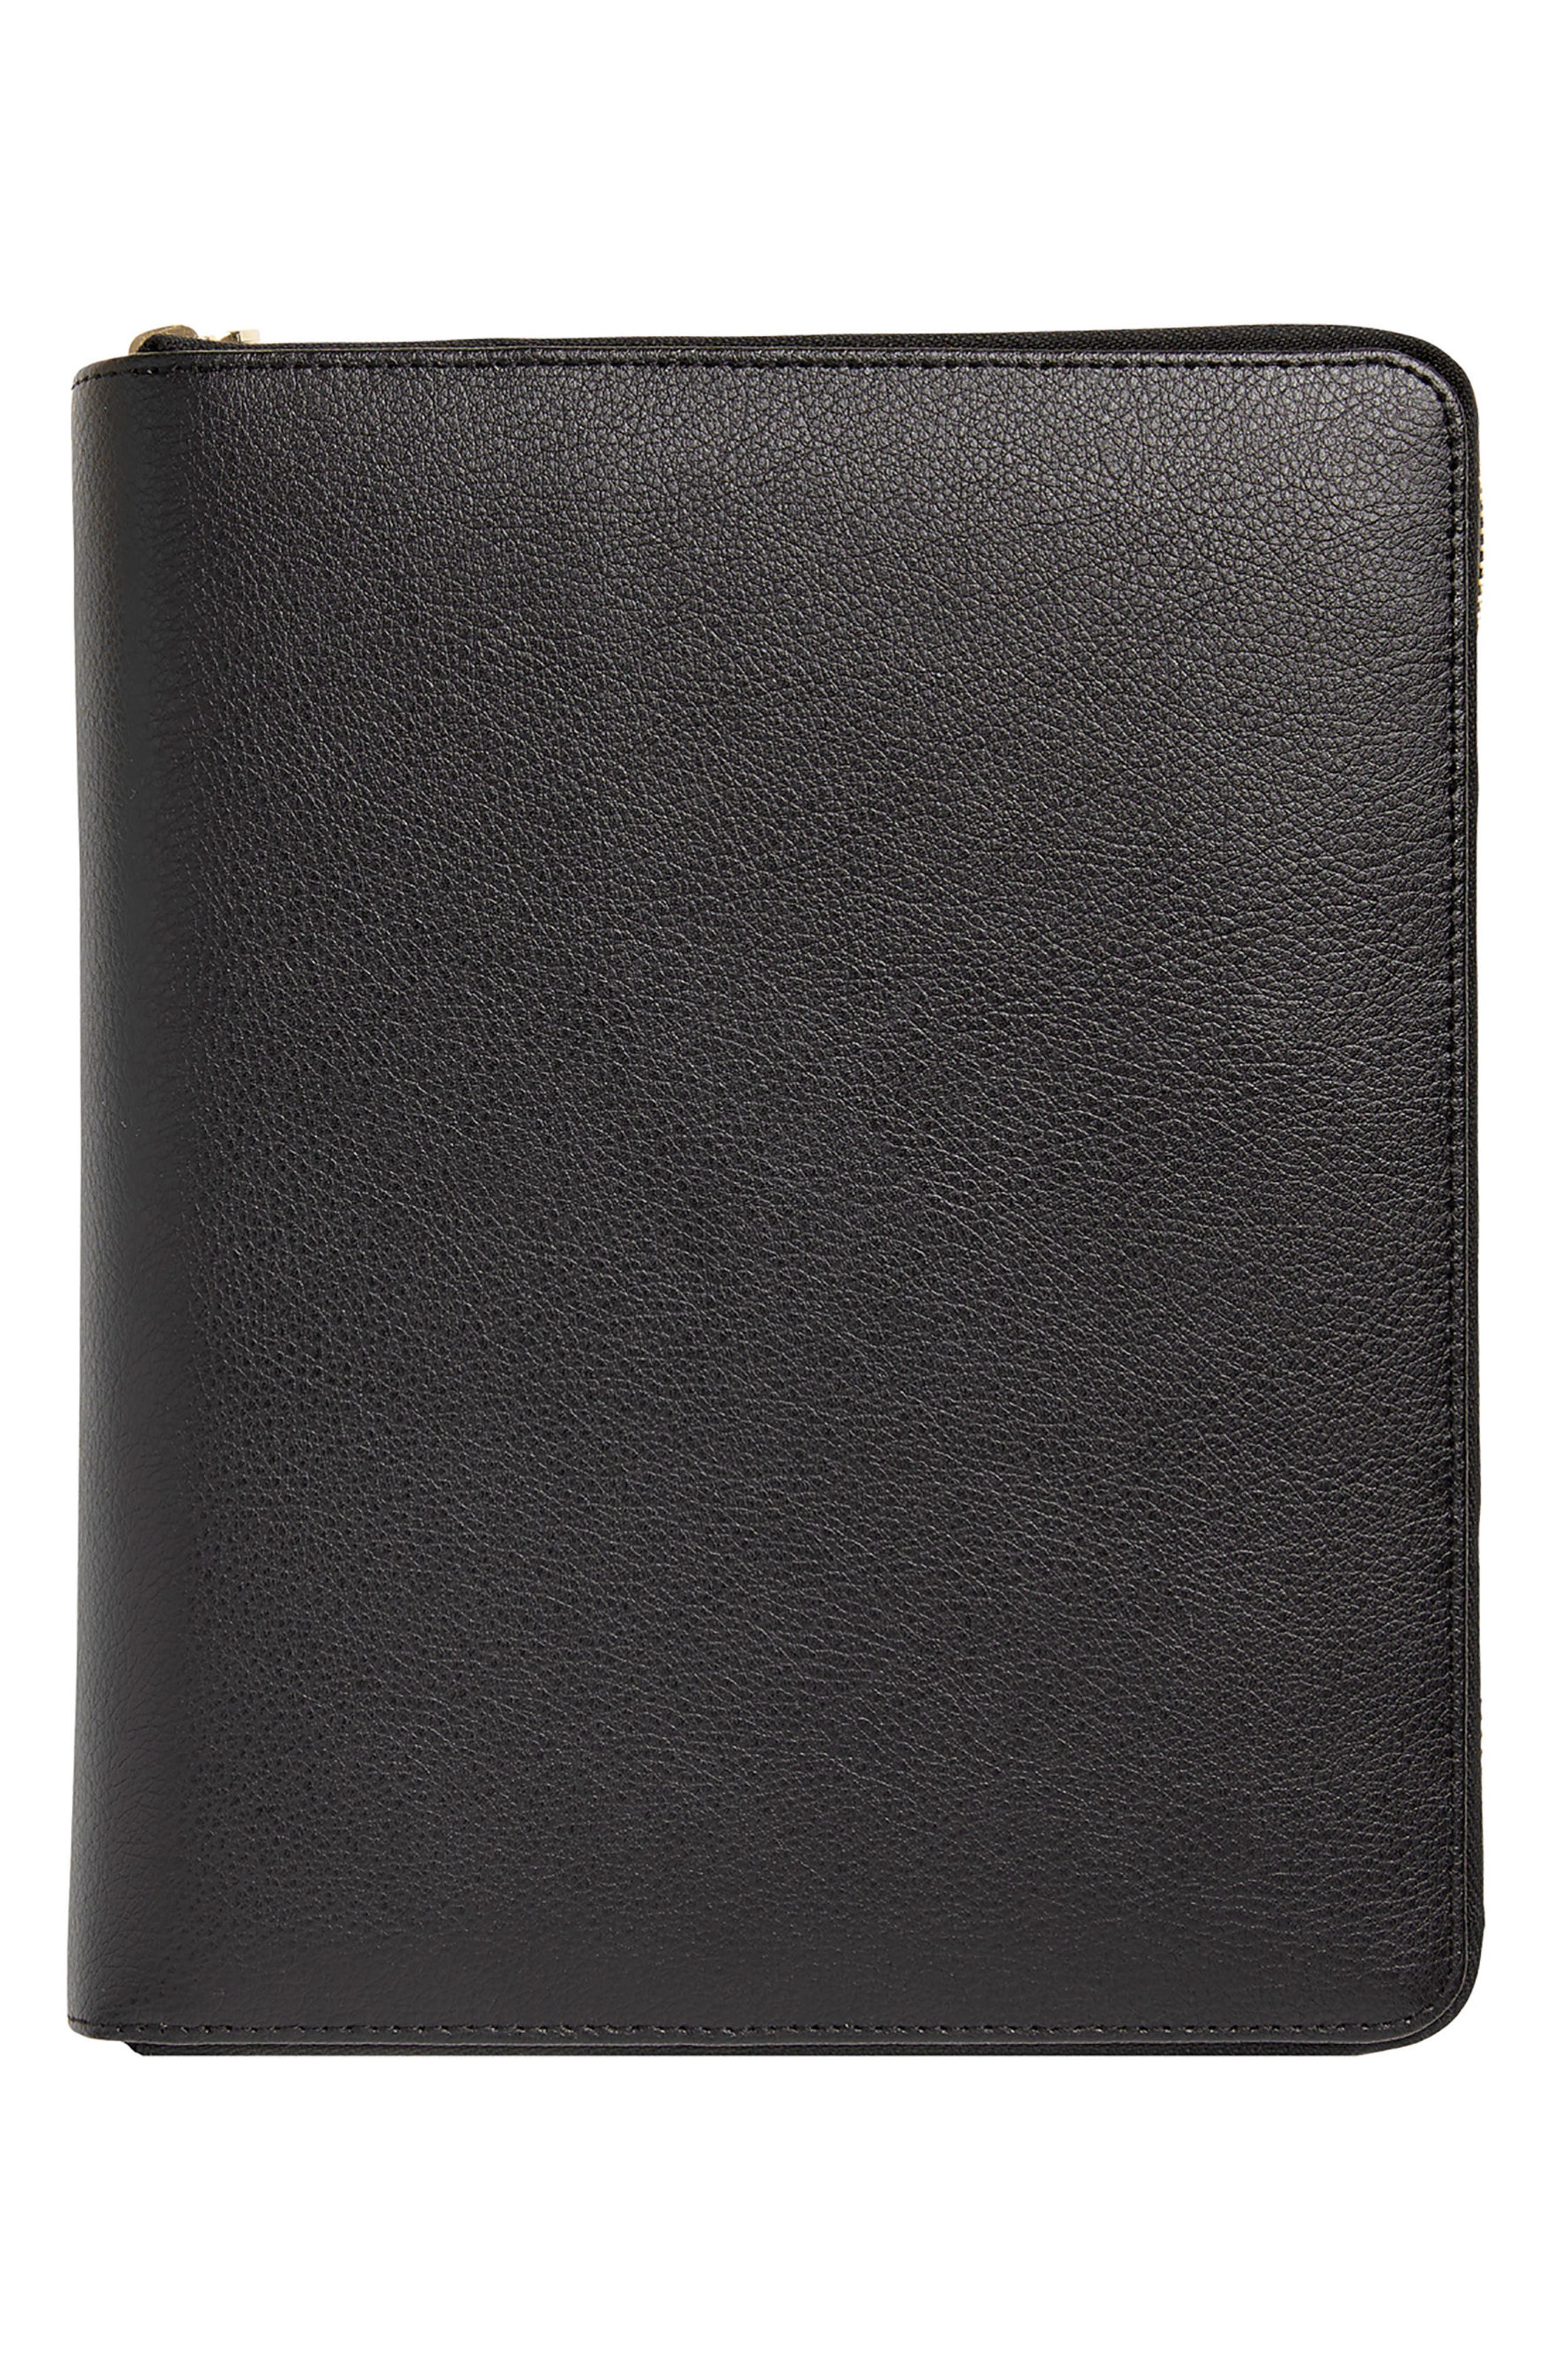 Zip-Around Leather 18-Month Perpetual Planner,                         Main,                         color, JET BLACK LARGE